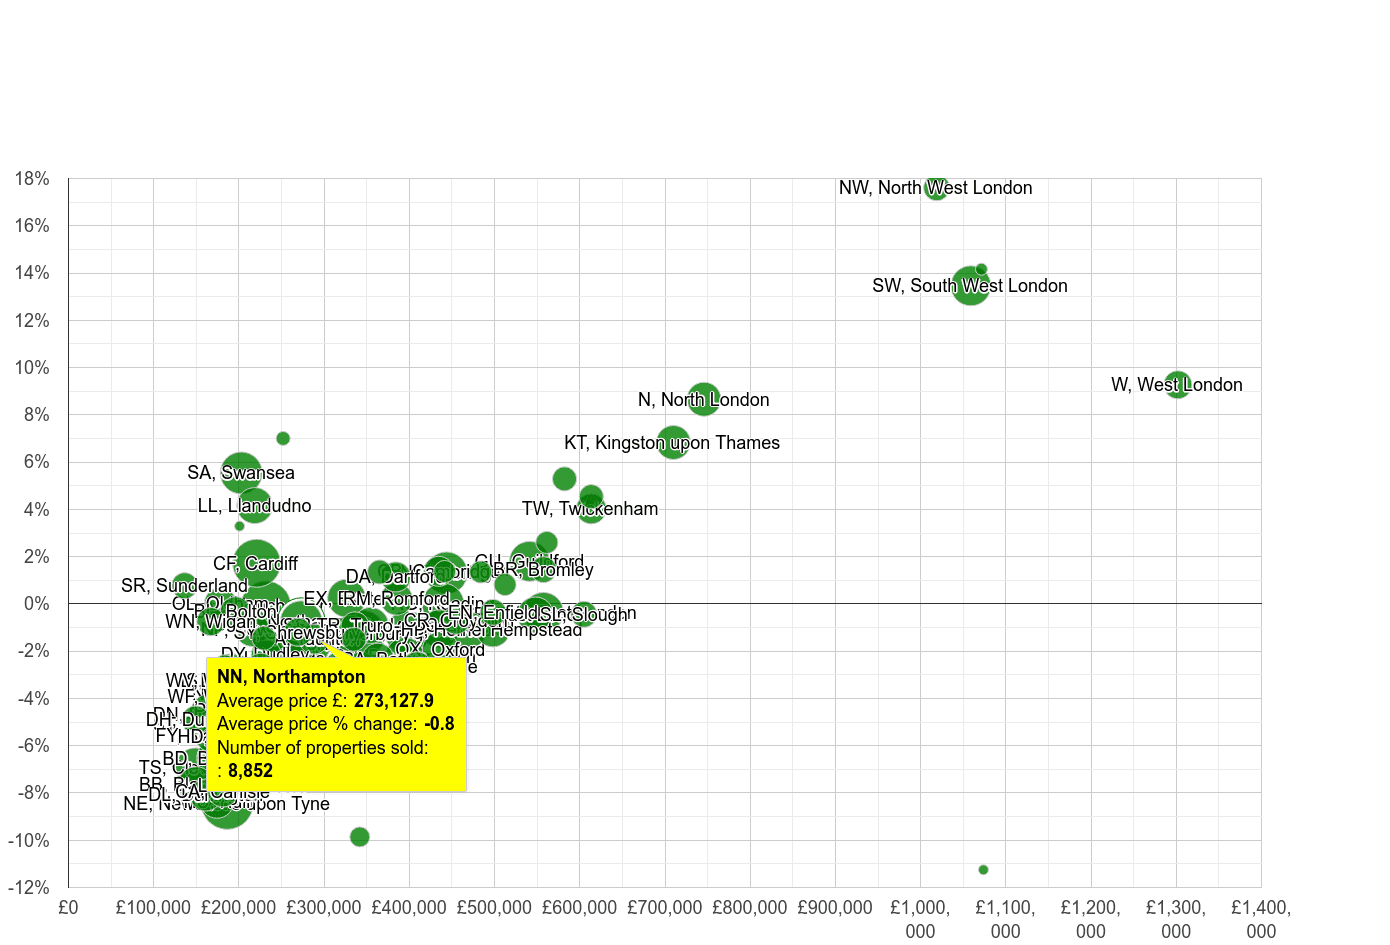 Northampton house prices compared to other areas